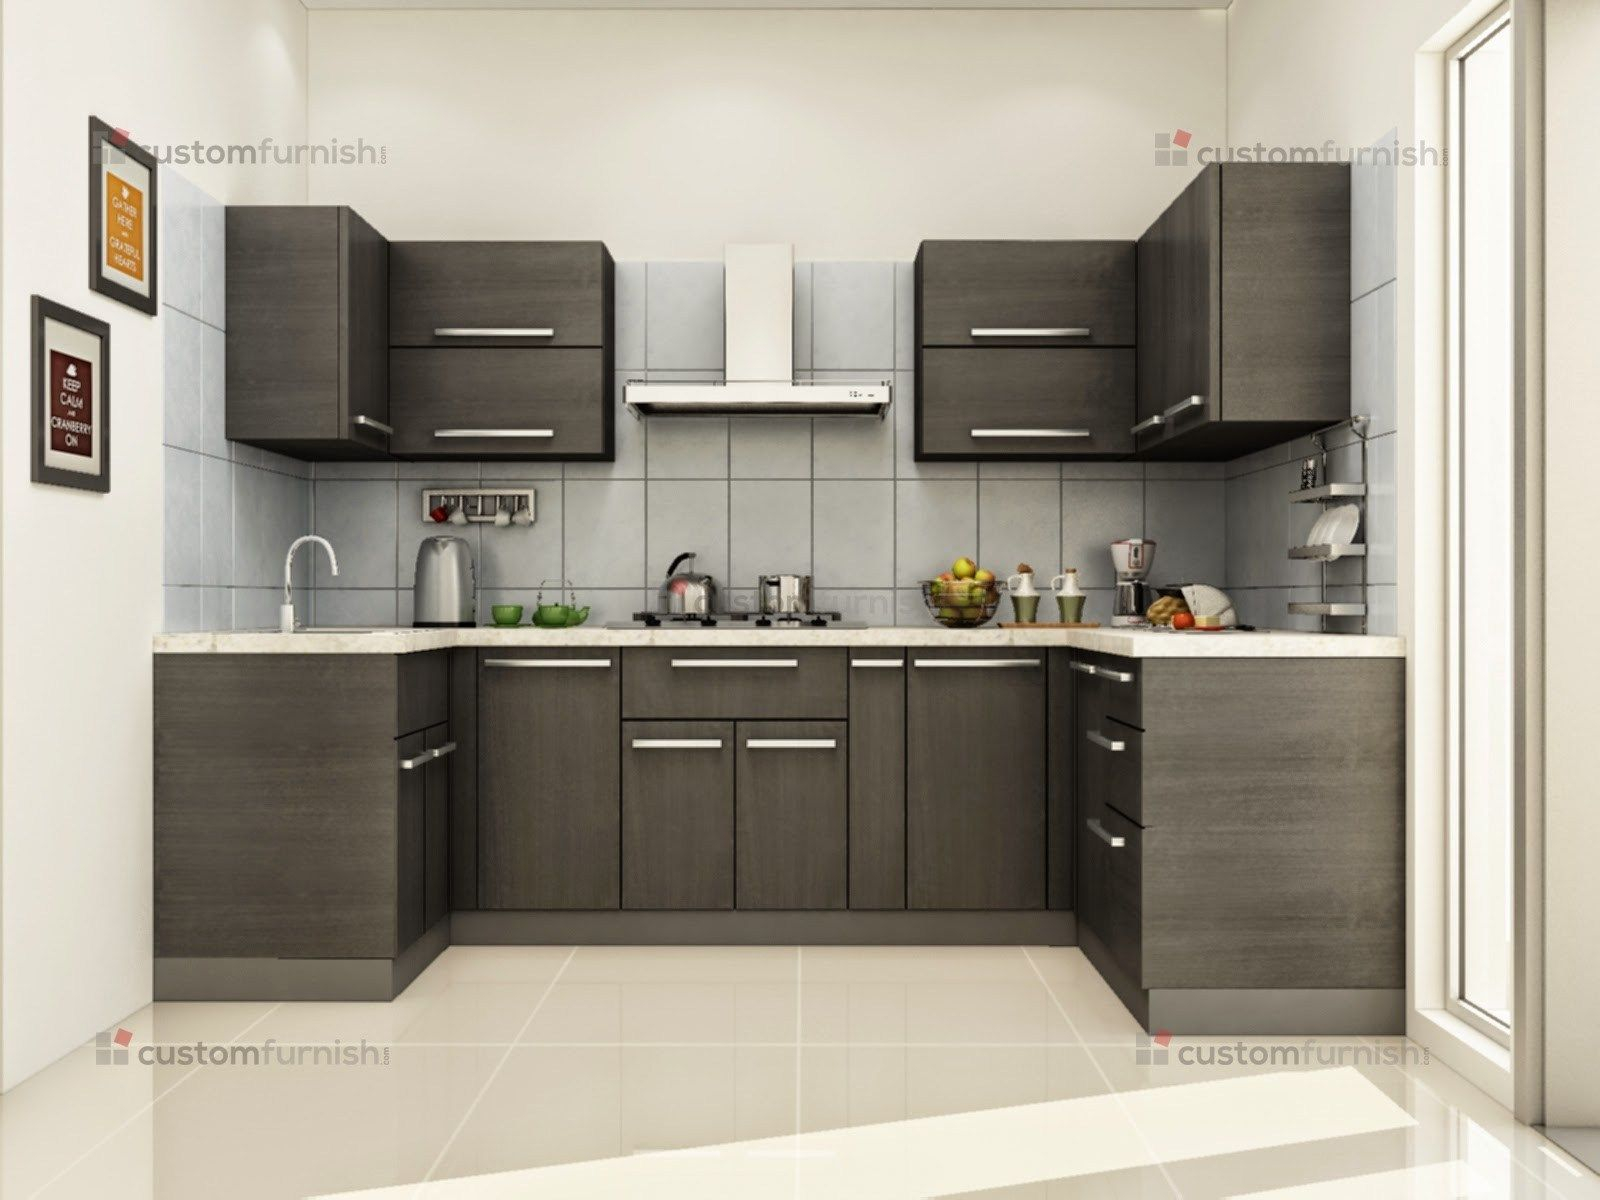 Kitchen Interior Design Hyderabad Kitchen #Kitchen #KitchenDesign